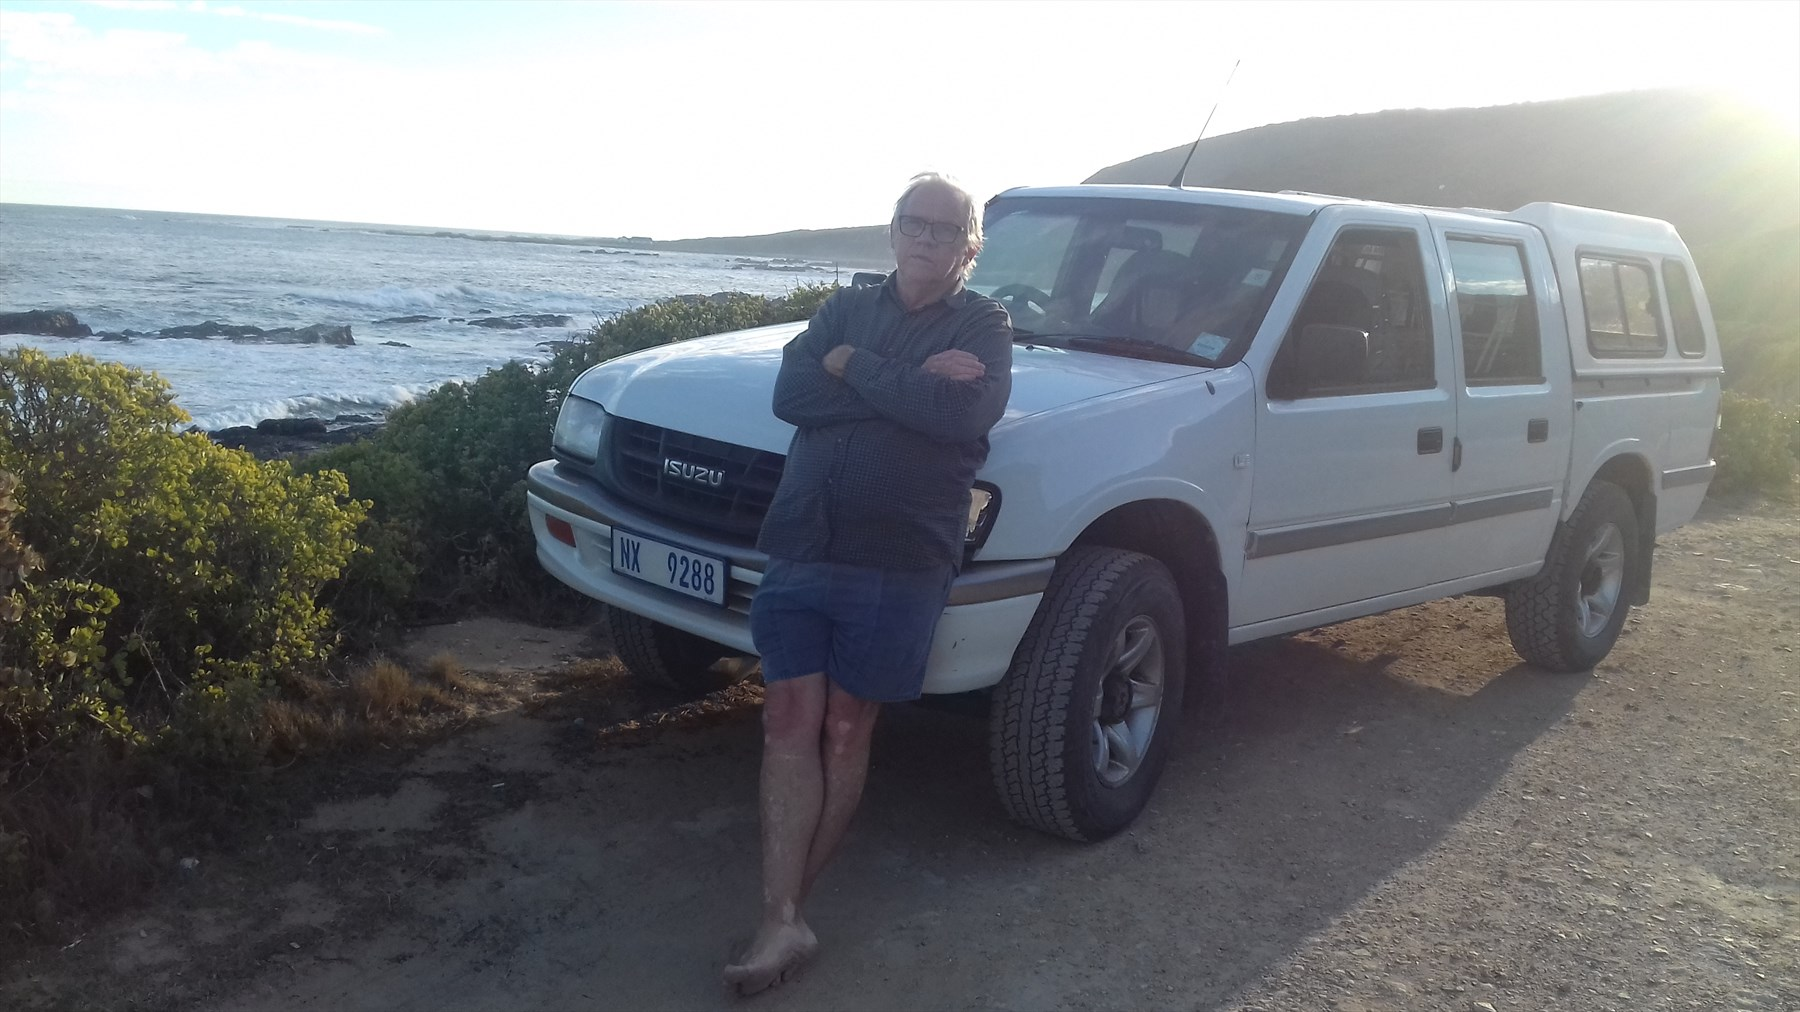 Globe Trotting Isuzu Bakkie To Be Given New Lease On Life As Winner